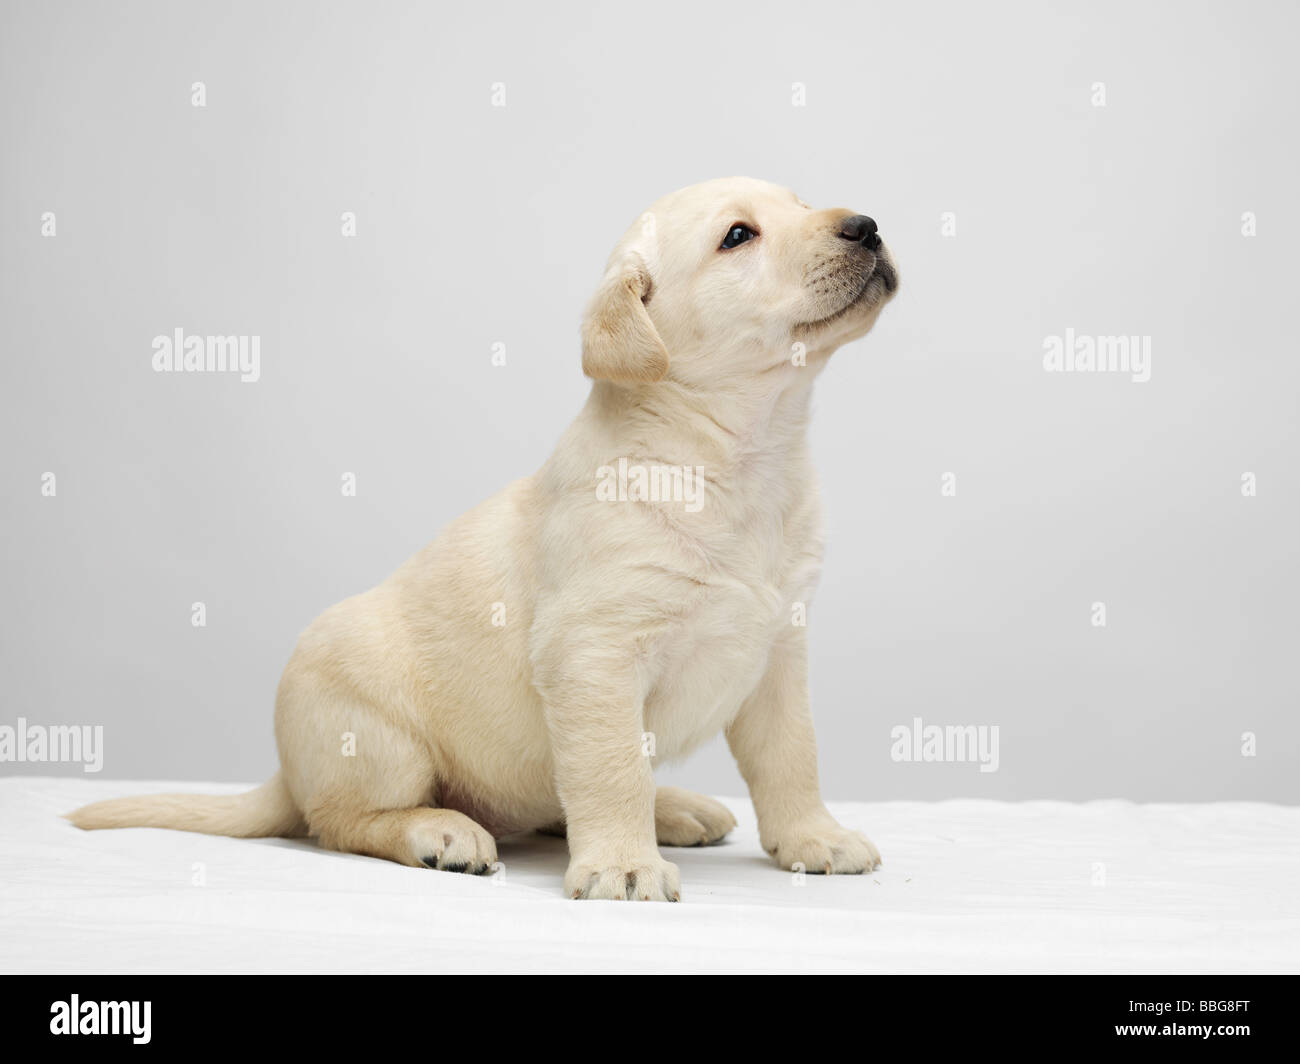 Single Labrador Puppy Sitting And Looking Up On A White Table